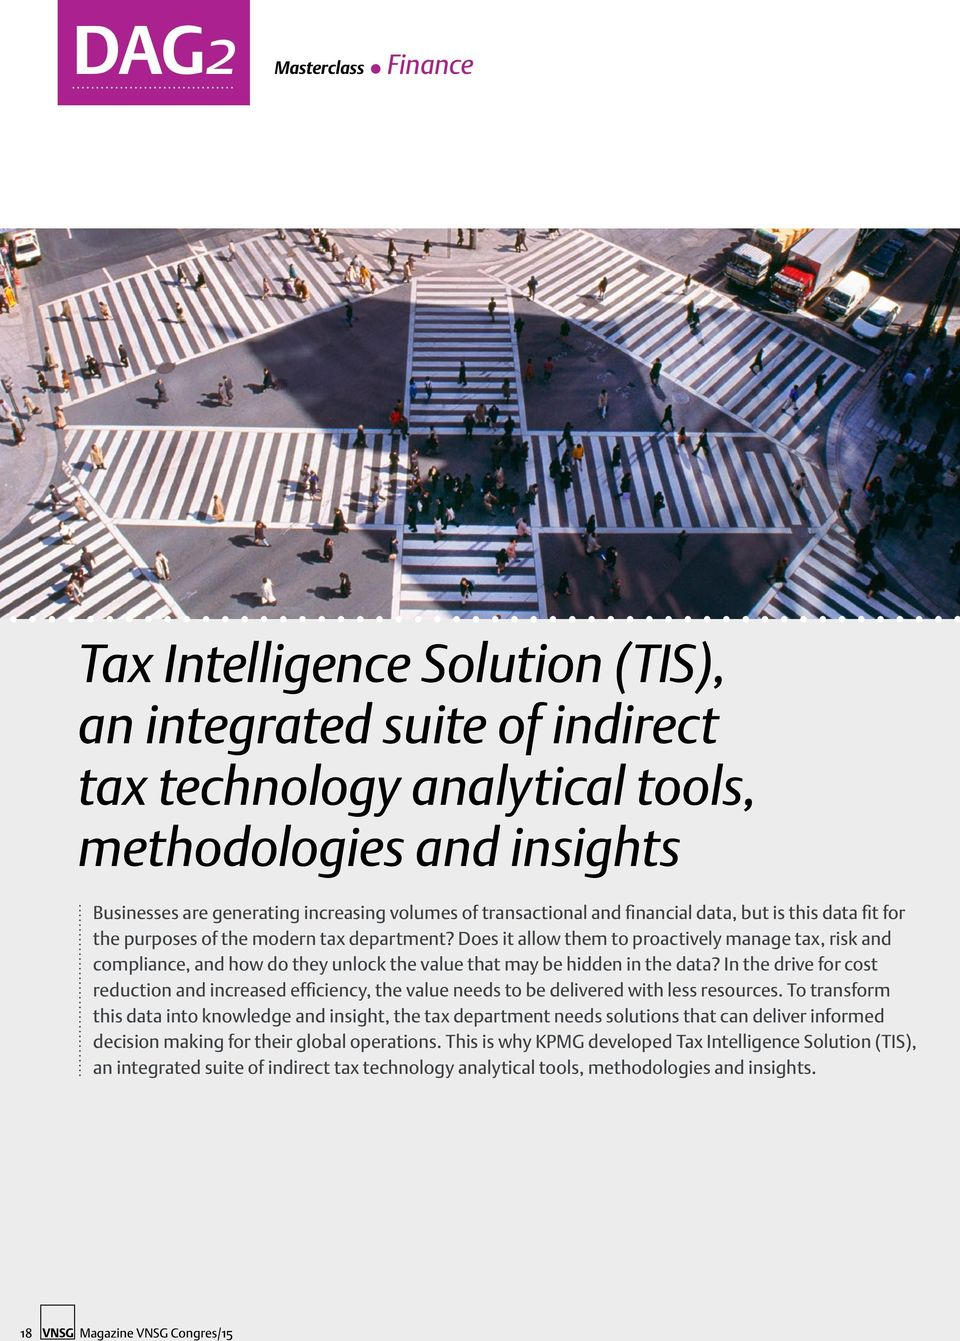 Does it allow them to proactively manage tax, risk and compliance, and how do they unlock the value that may be hidden in the data?